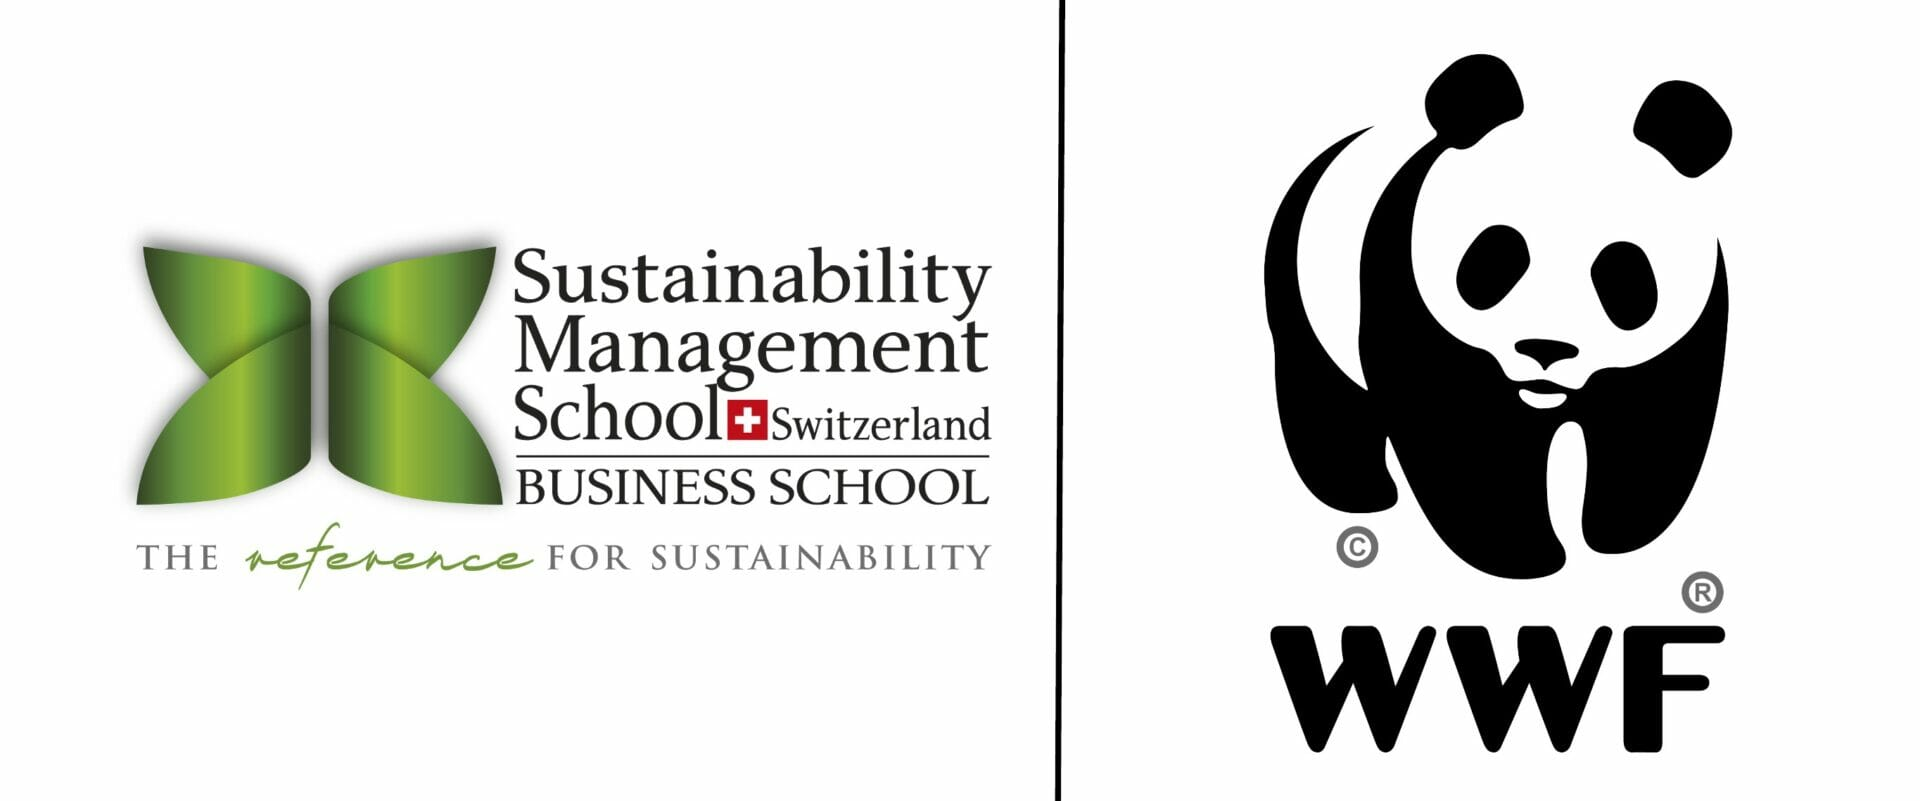 Guest Lecture, Jean-Paul Paddack, Executive Director at WWF International